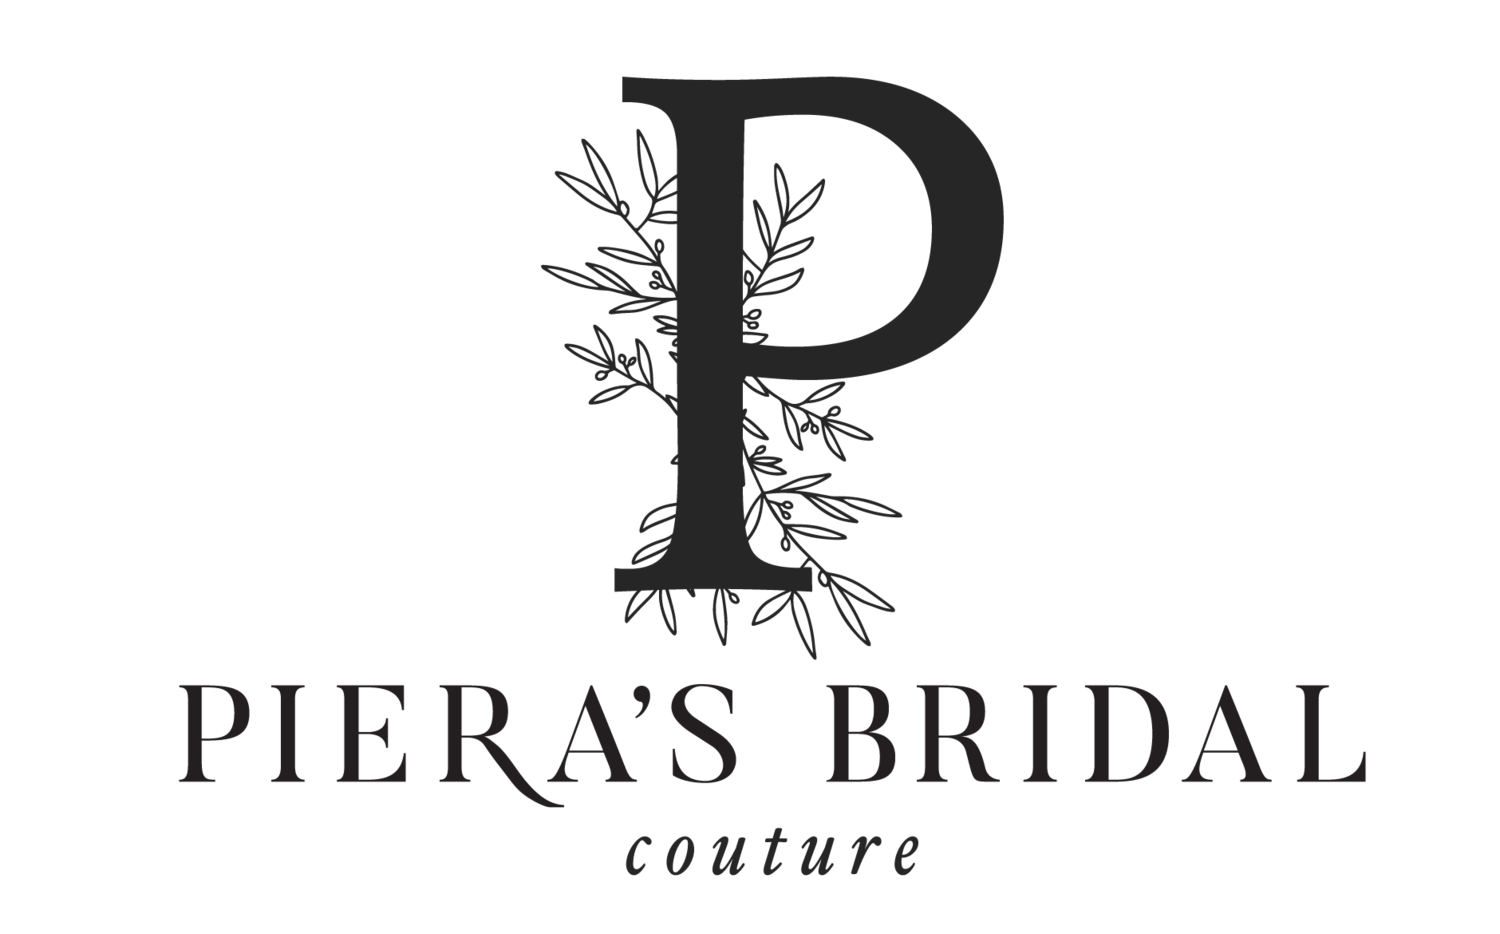 Piera's Bridal Couture